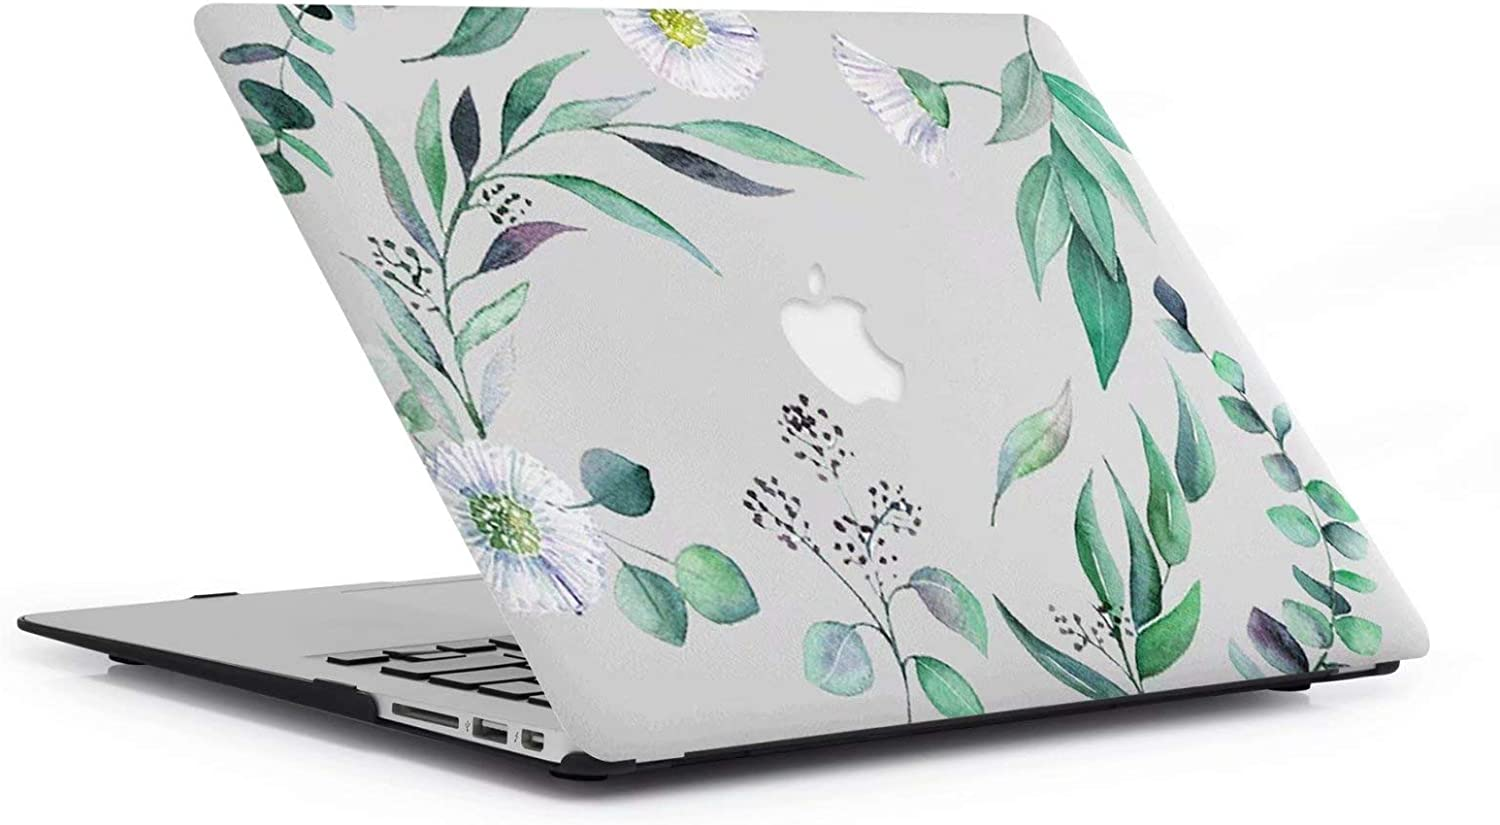 A1369 MacBook Air 13 Case LH-34 green leaf AQYLQ Super Thin Rubberized Coated Laptop Cover Shell Protective for Apple 13 inch MacBook Air 13.3 Model A1466